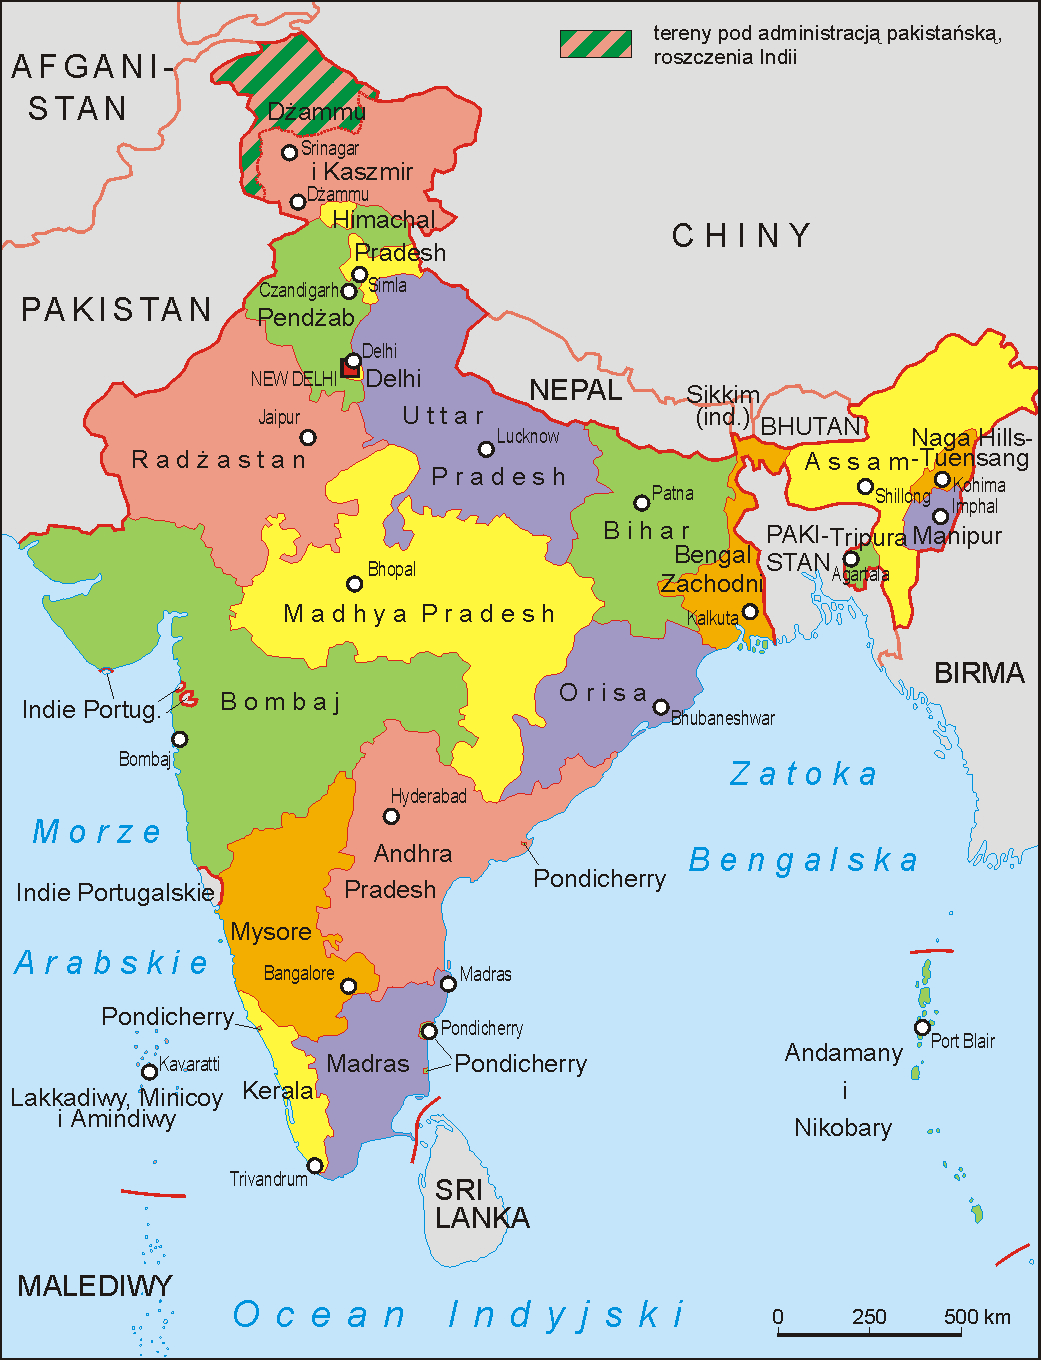 httpuploadwikimediaorgwikipediacommonsindiaadministrativemapplpng. a fast that changed the map of india  guruprasad's portal